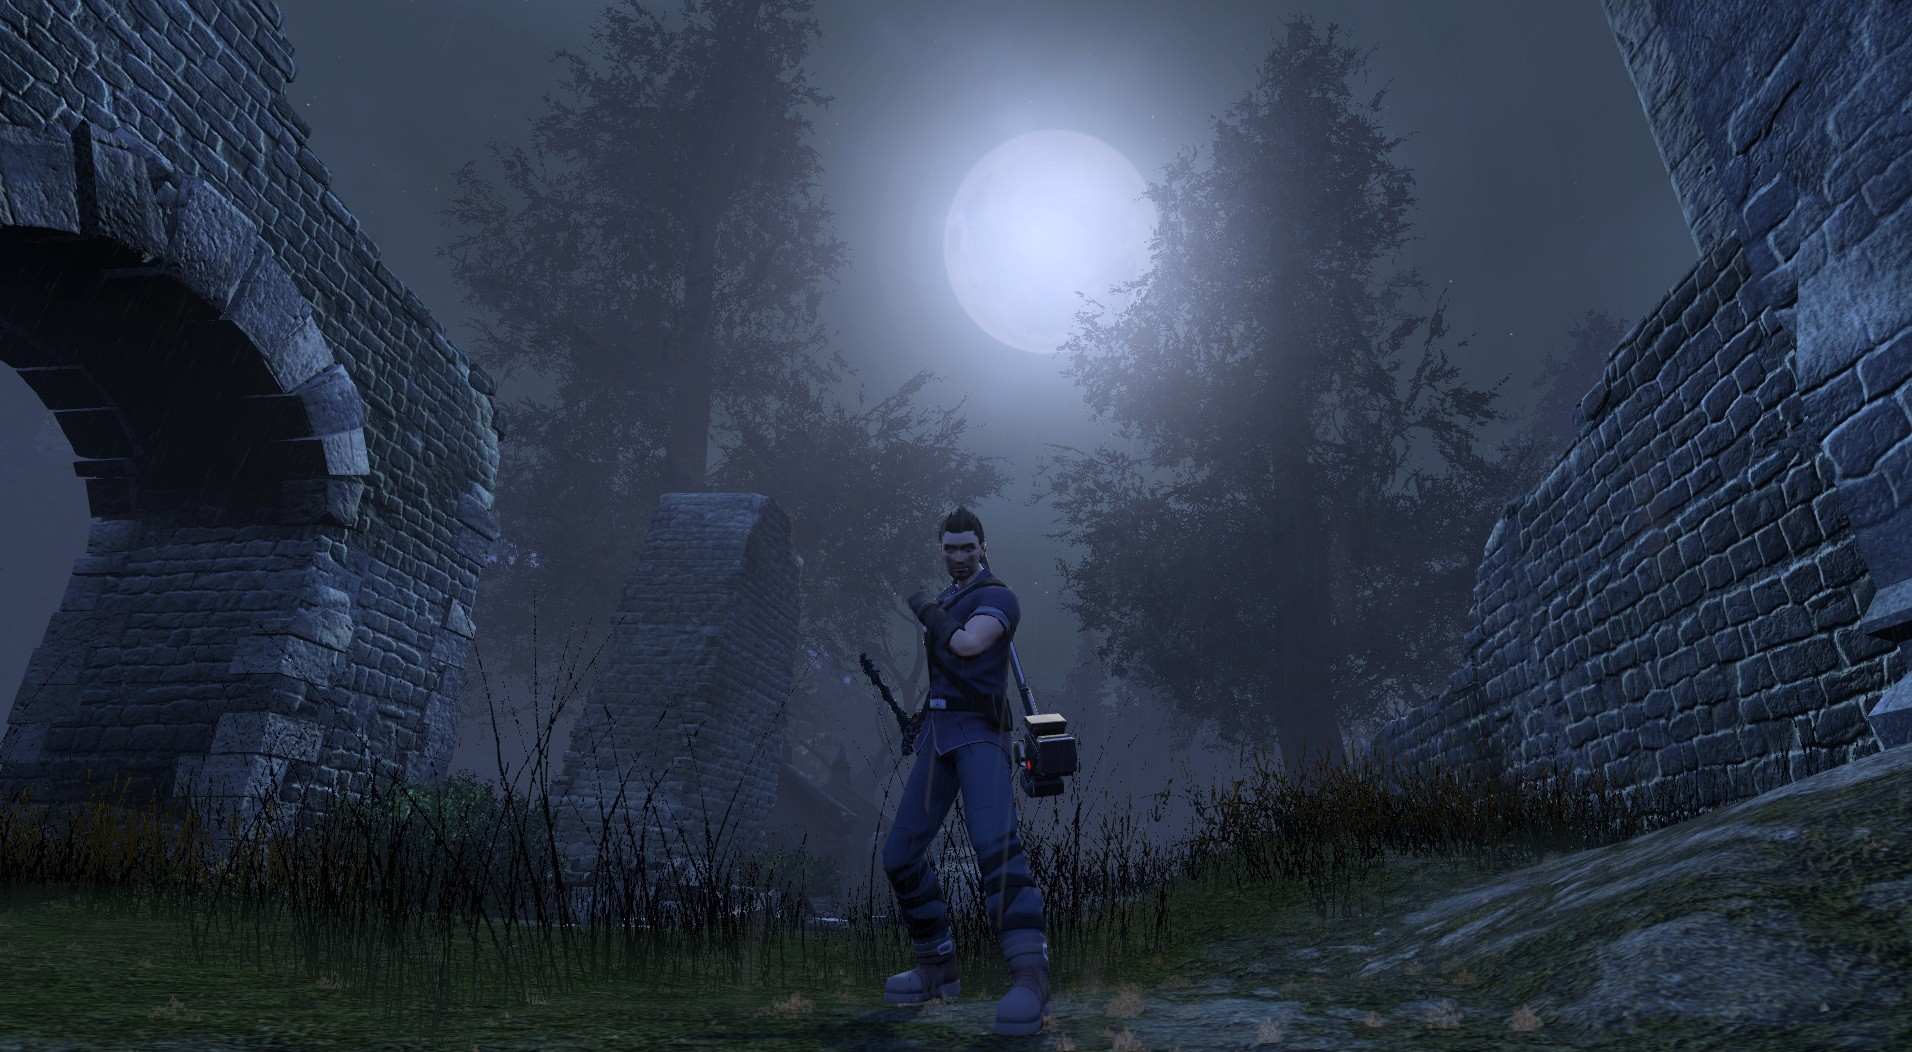 The Secret World - Goon, under the moon.